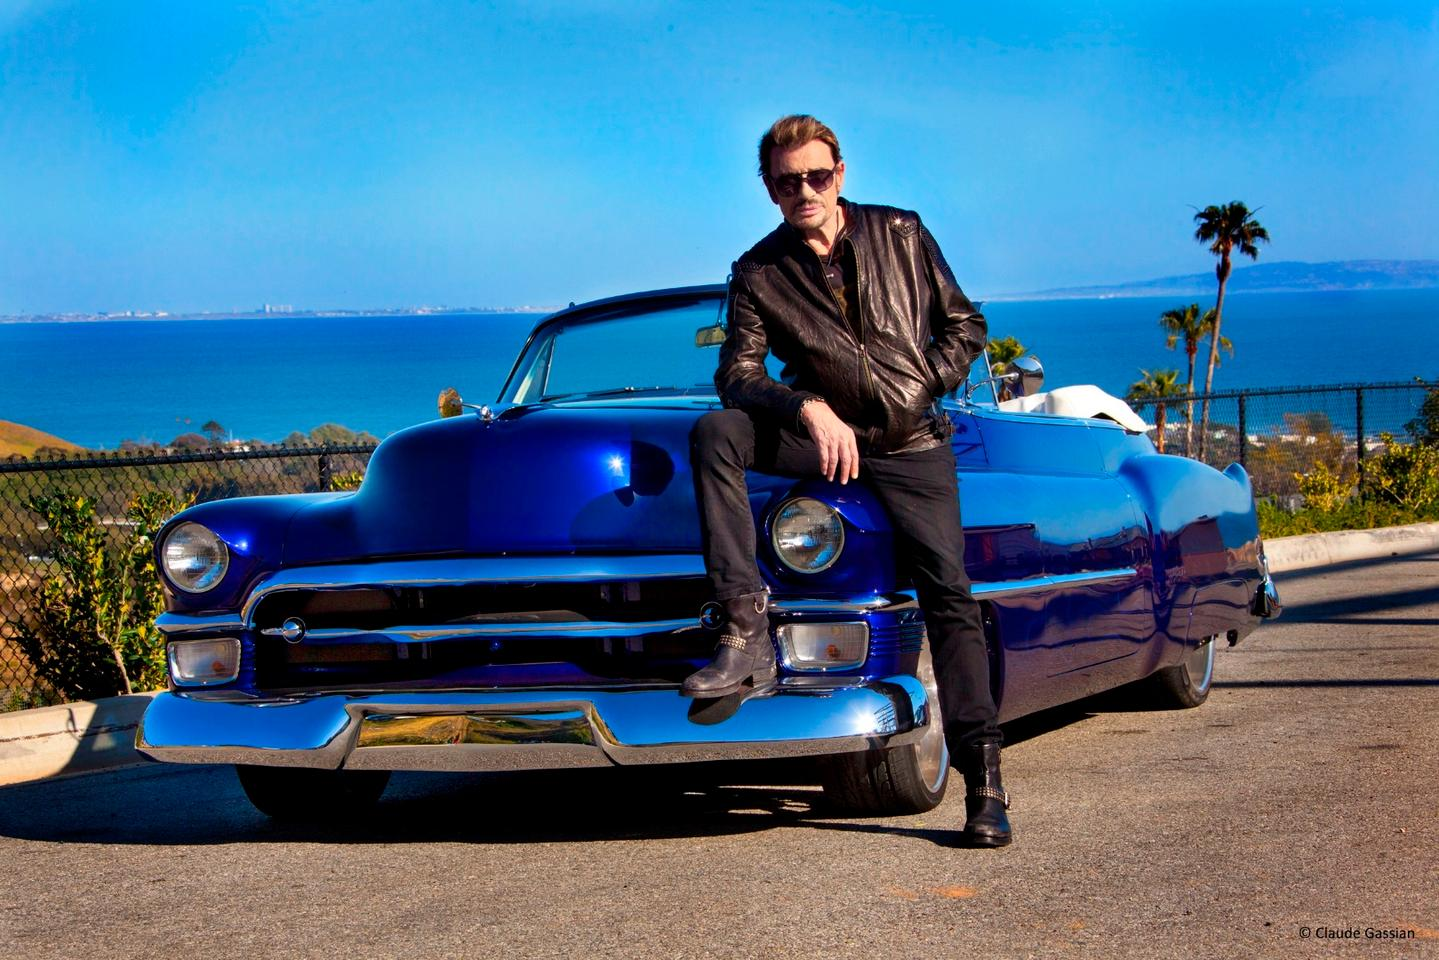 Hallyday and his Cadillac